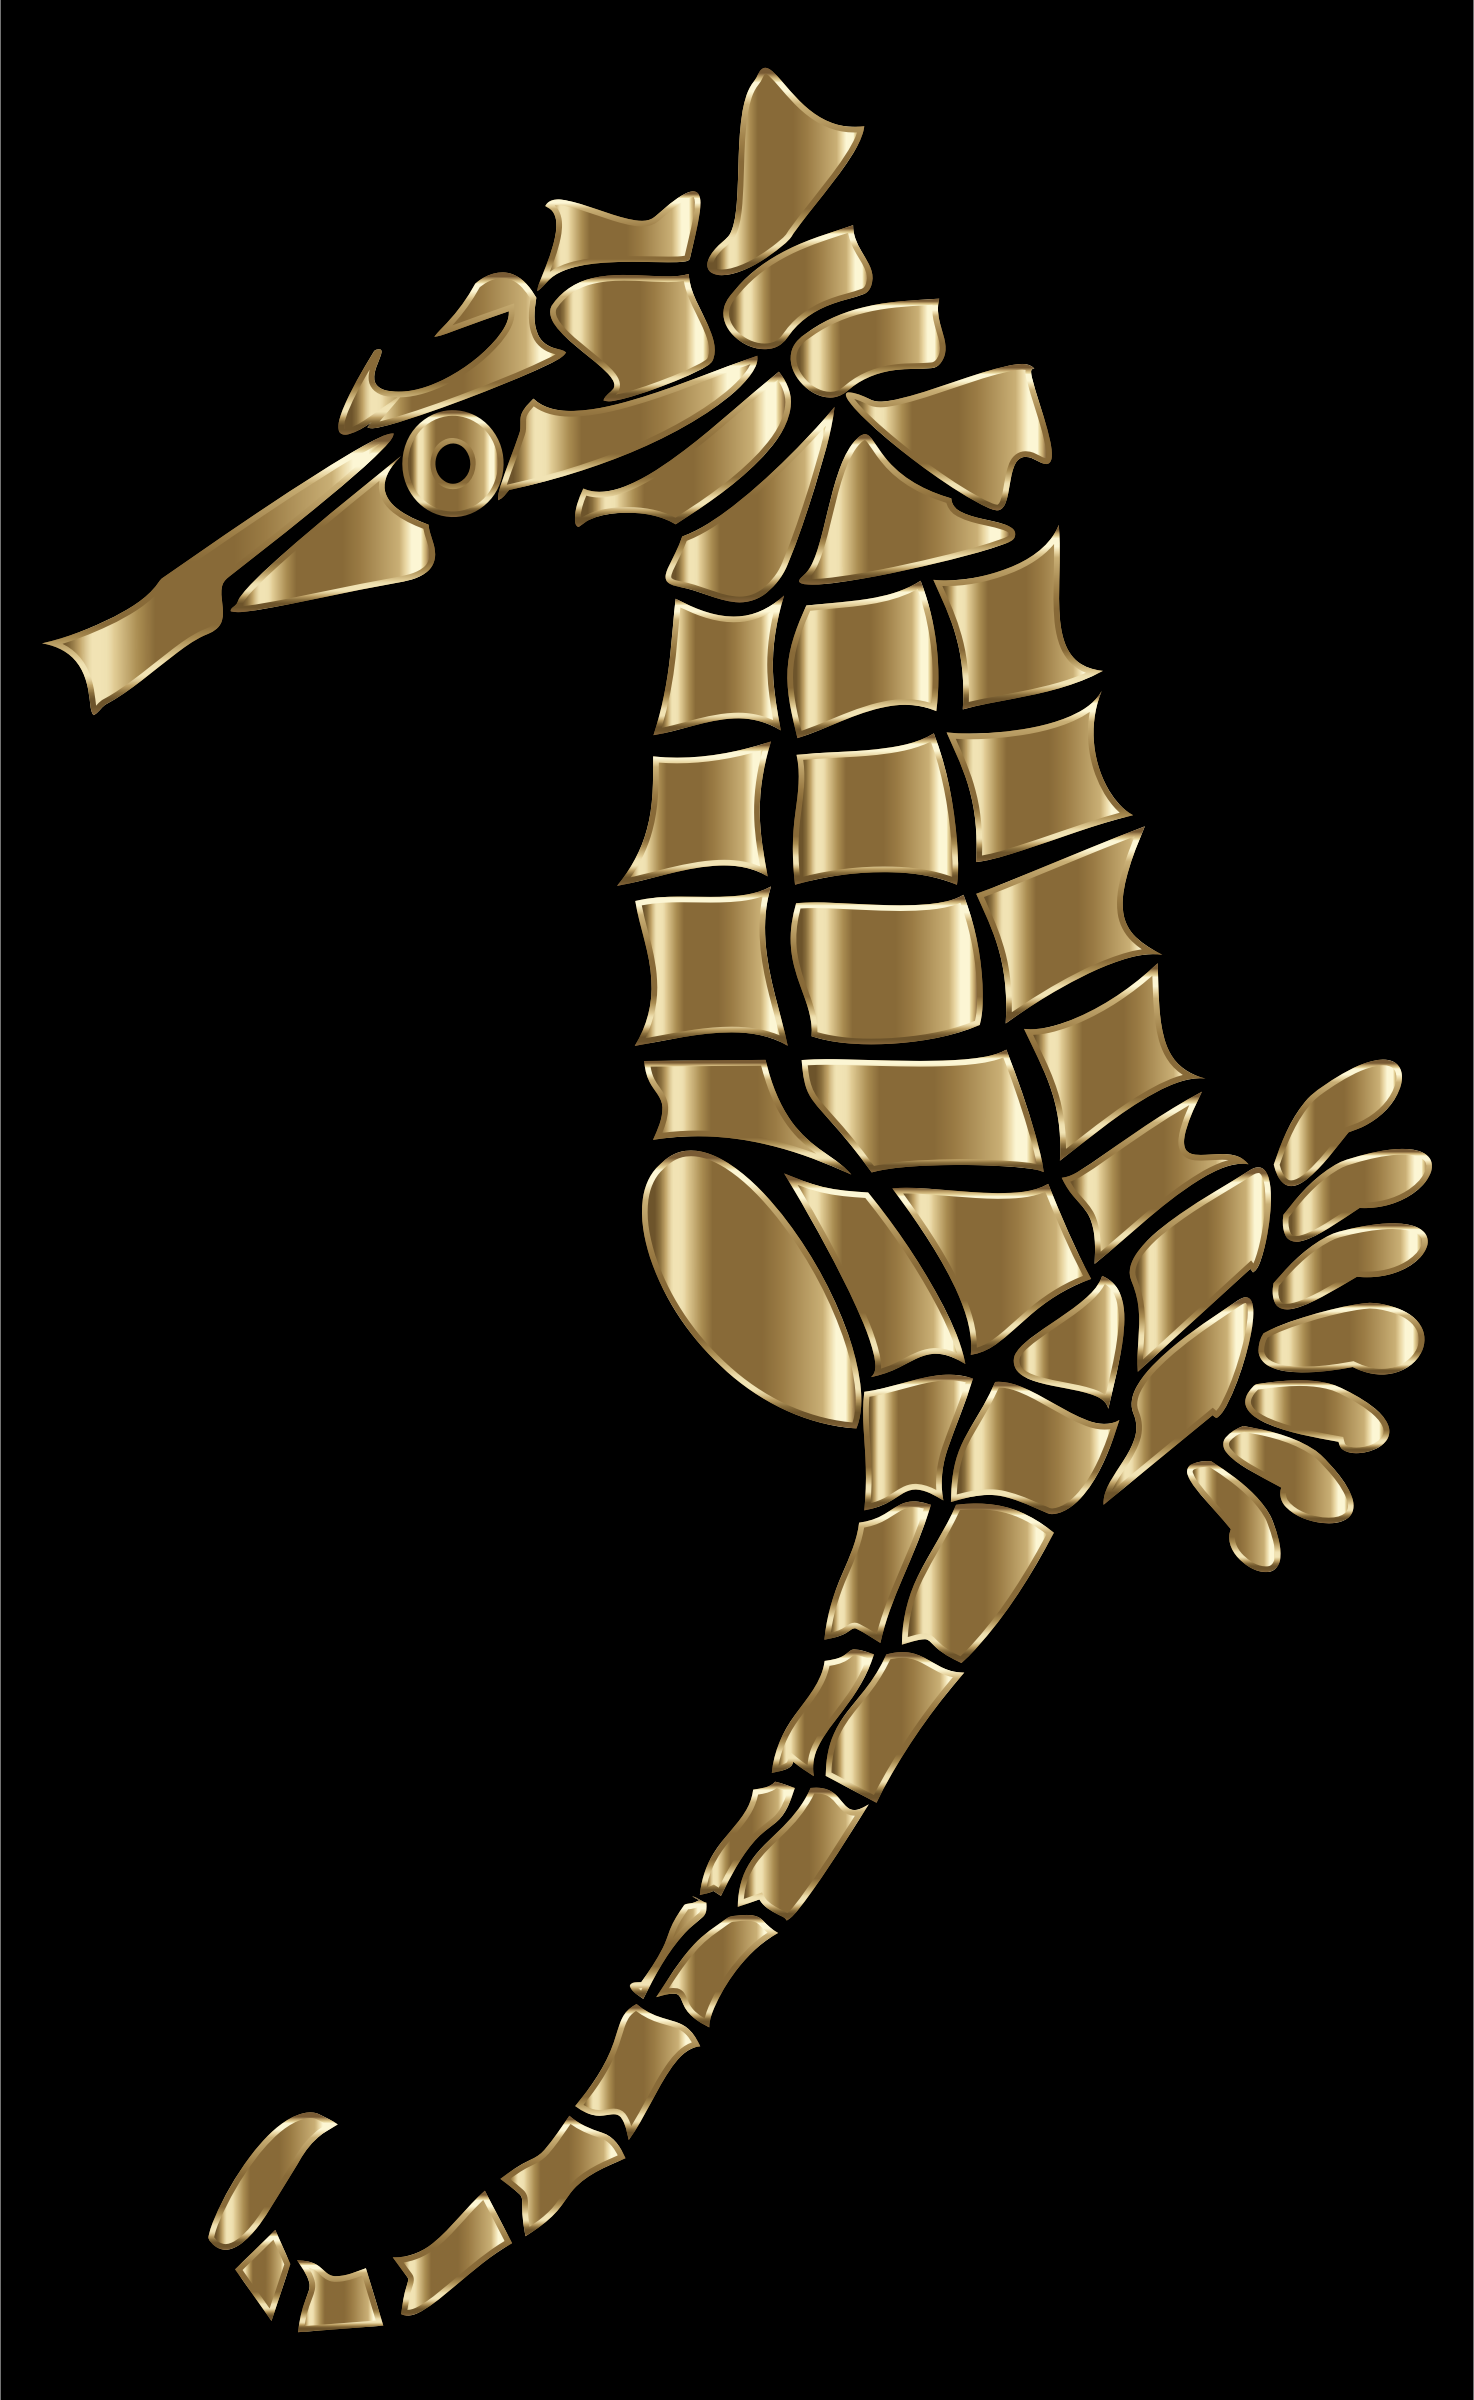 Polished Copper Stylized Seahorse Silhouette by GDJ